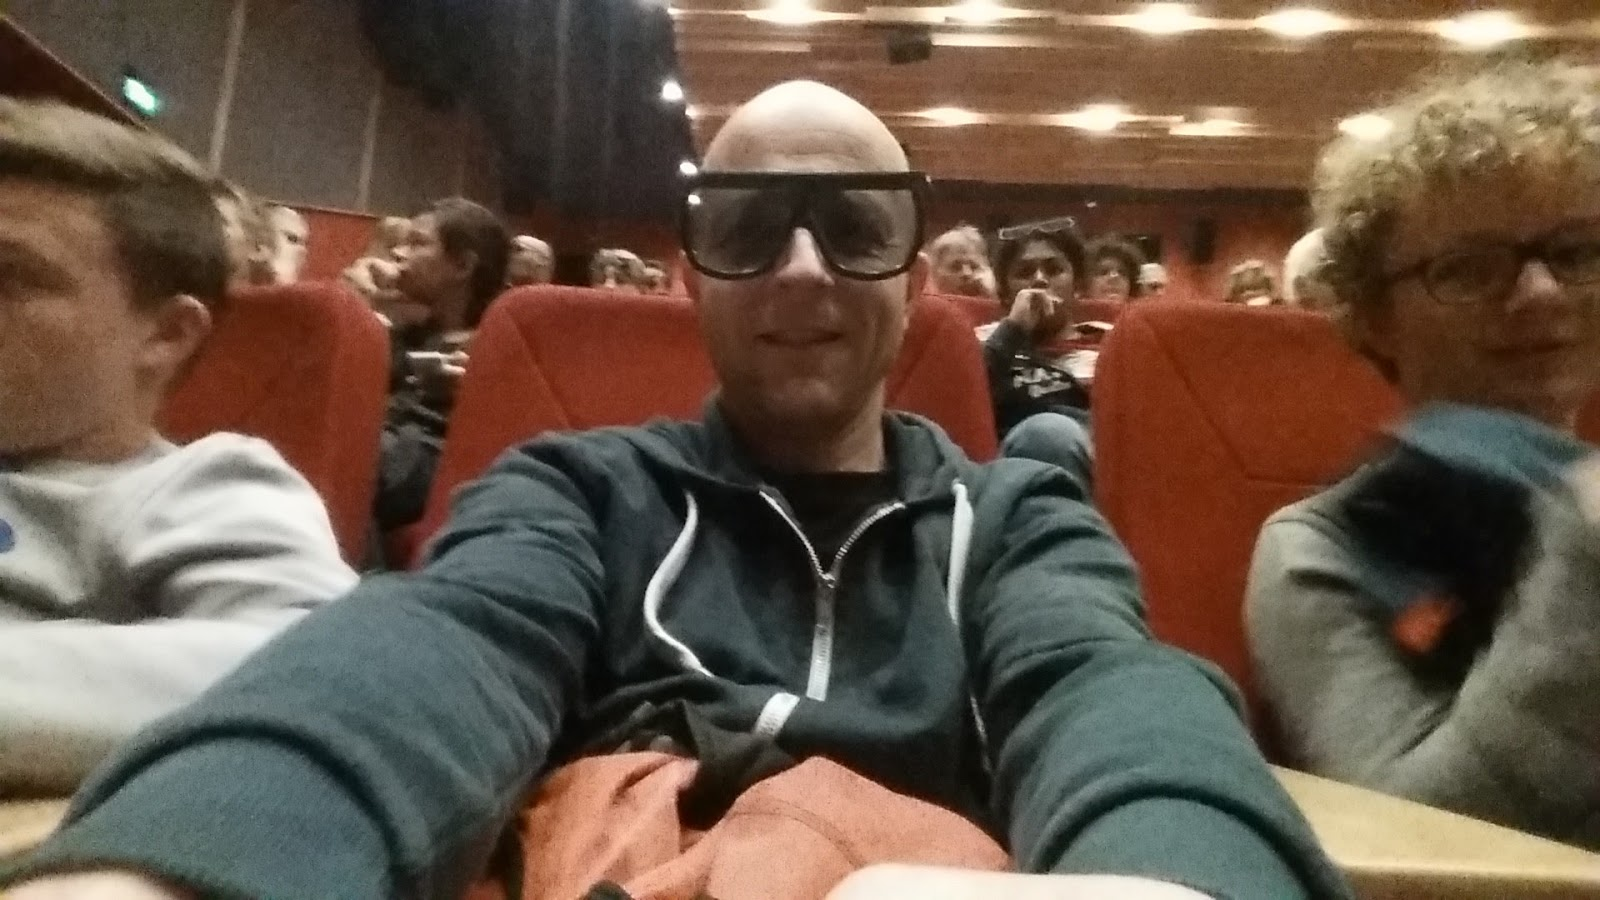 Star Wars in 3D